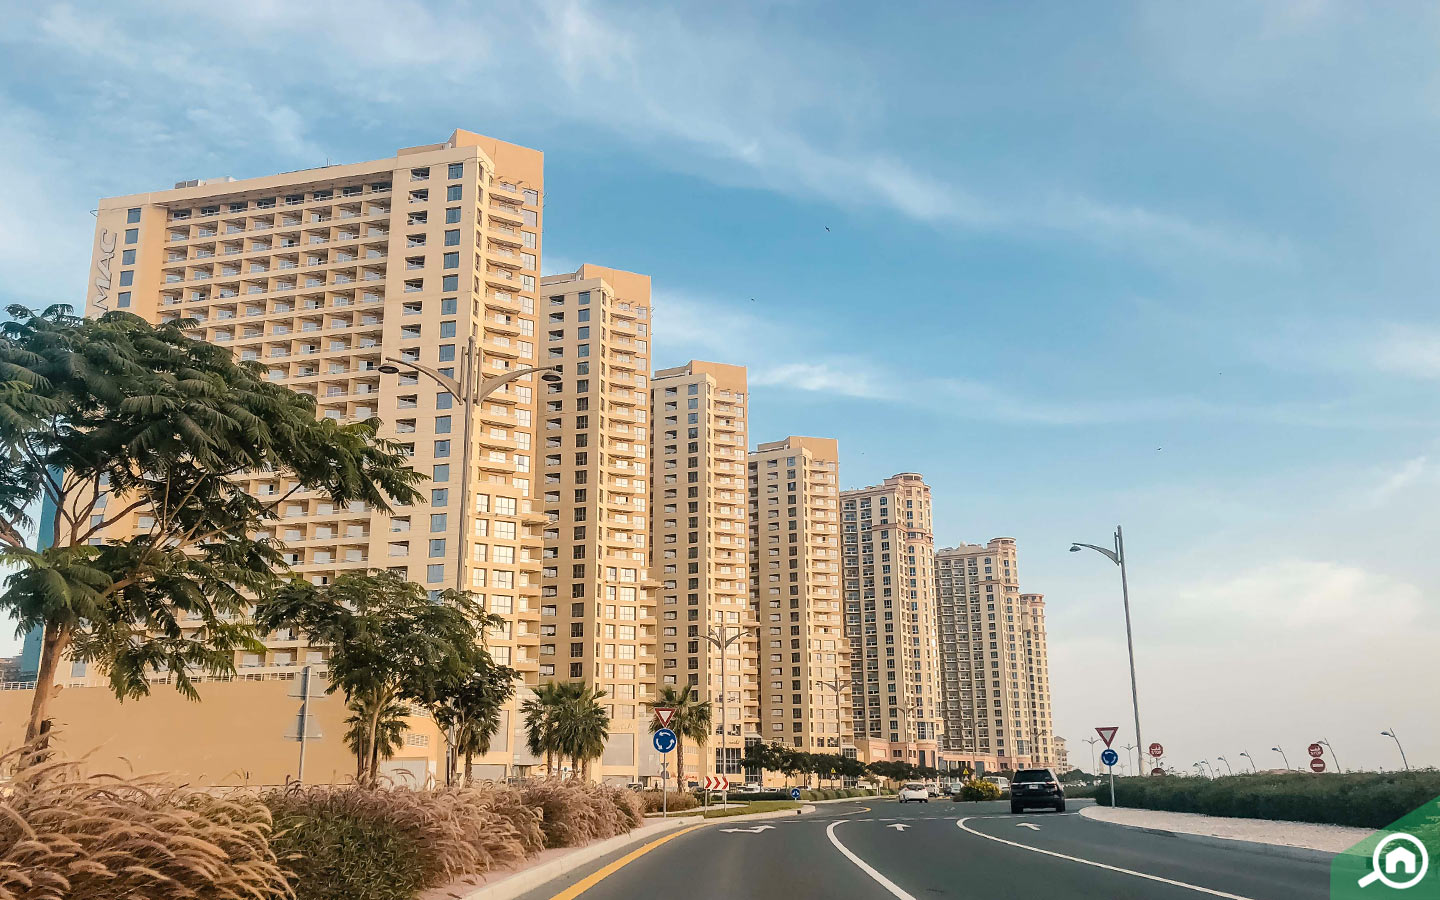 Dubai Production City Apartments with roads the area is known for cheap apartments for sale in Dubai13.01.2020